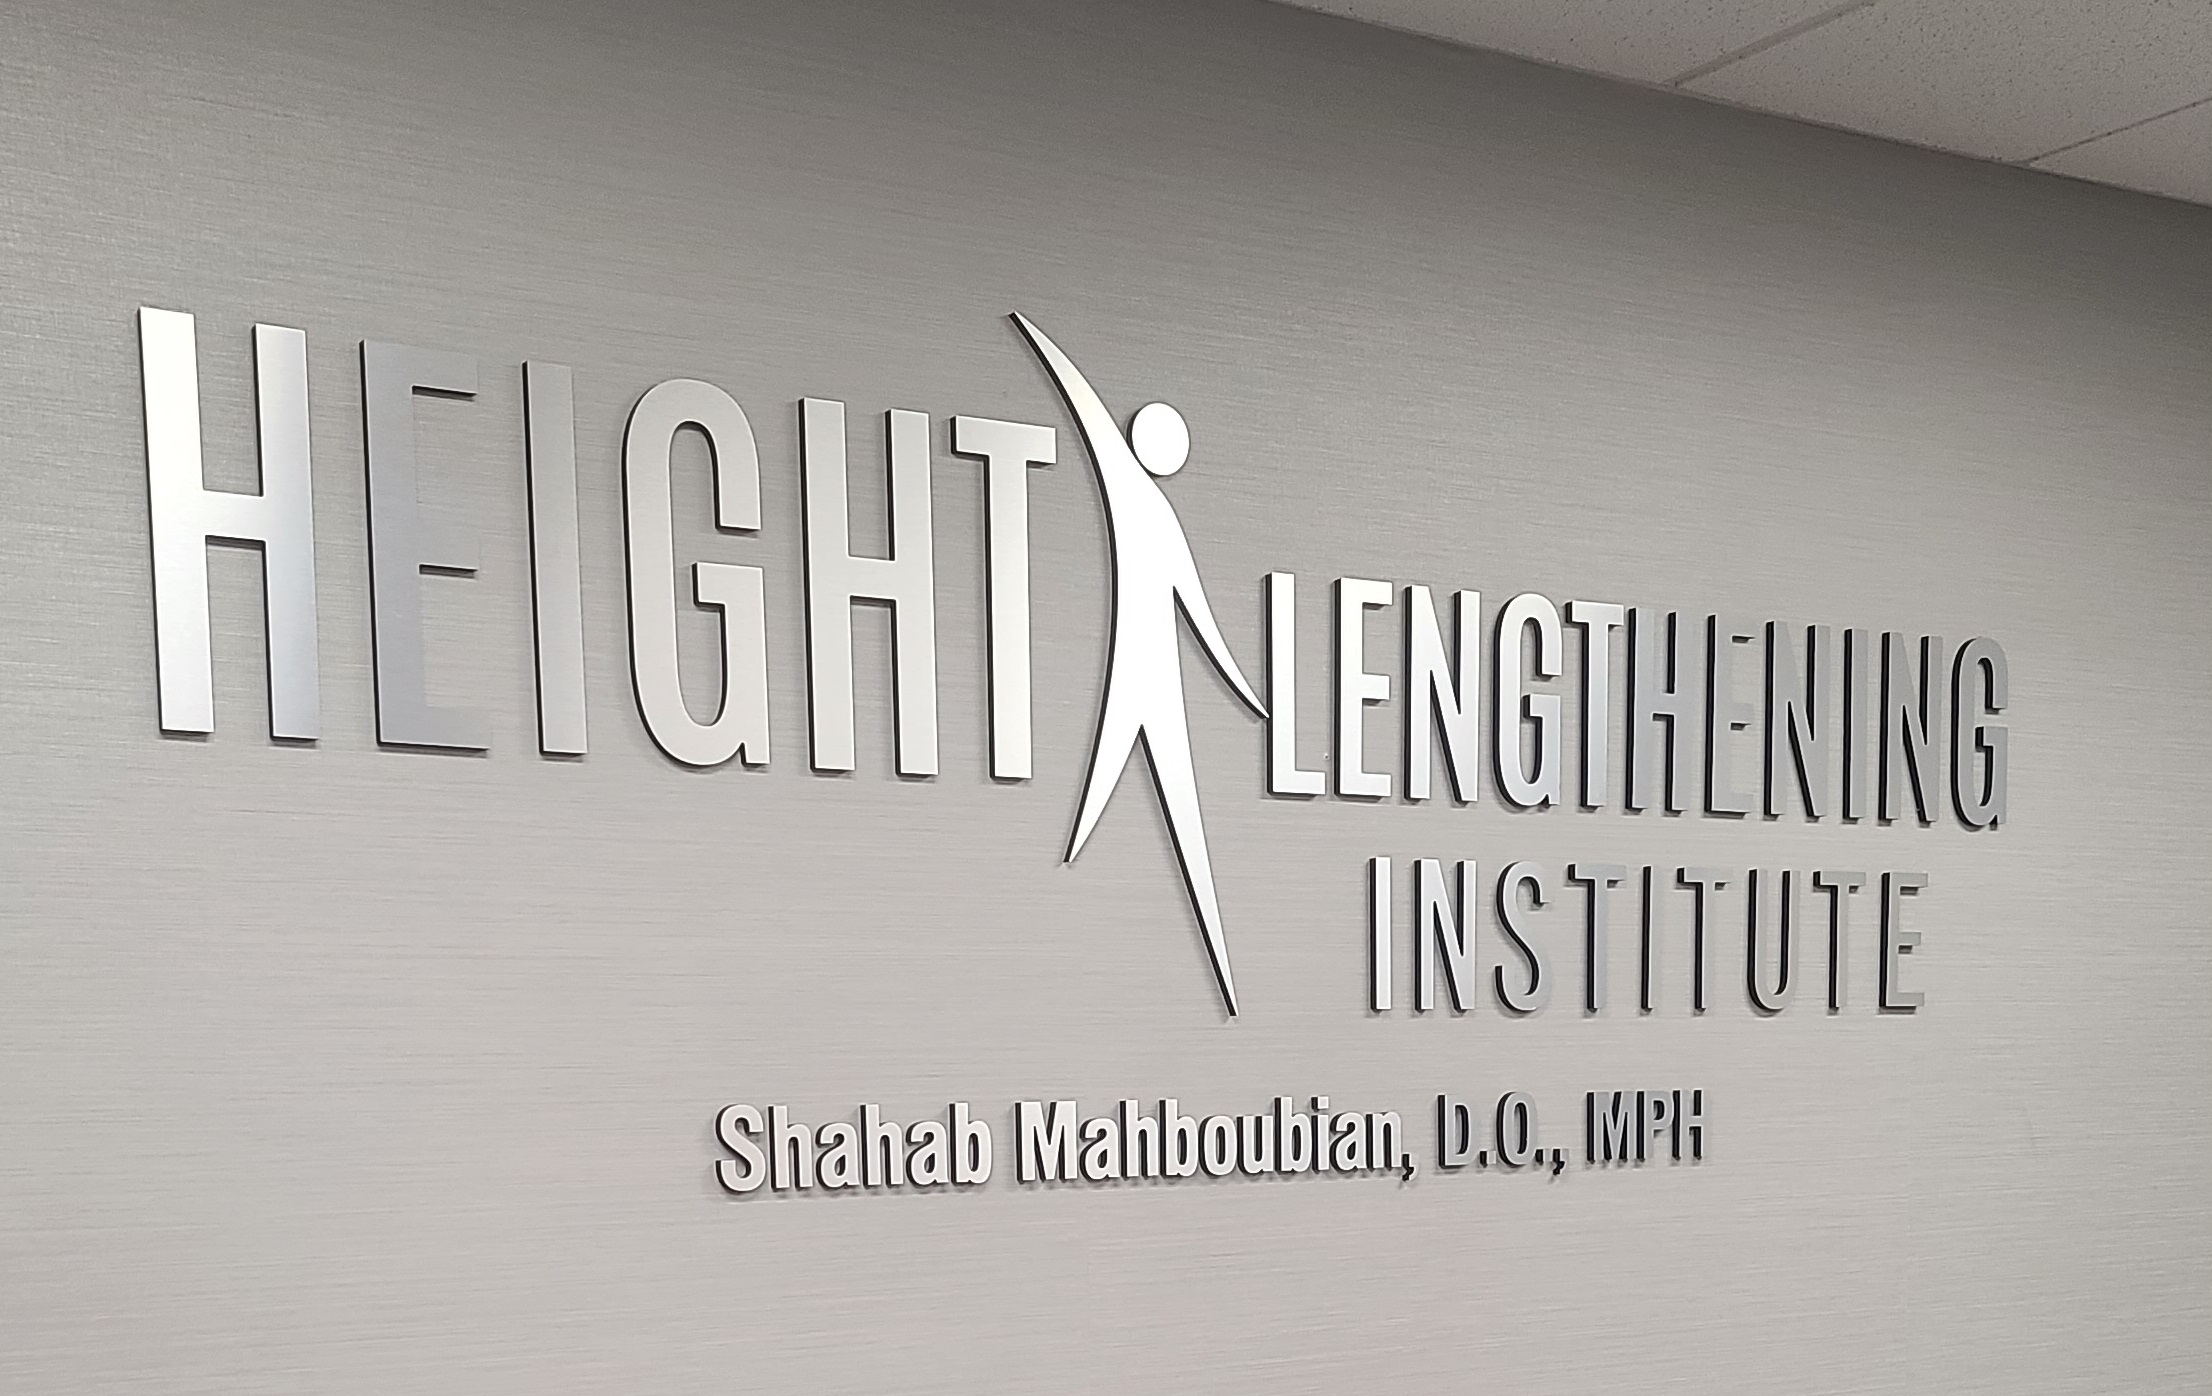 Our clinic lobby sign for the Height Lengthening Institute in Burbank enhances their office and makes the brand more visible to visiting patients.